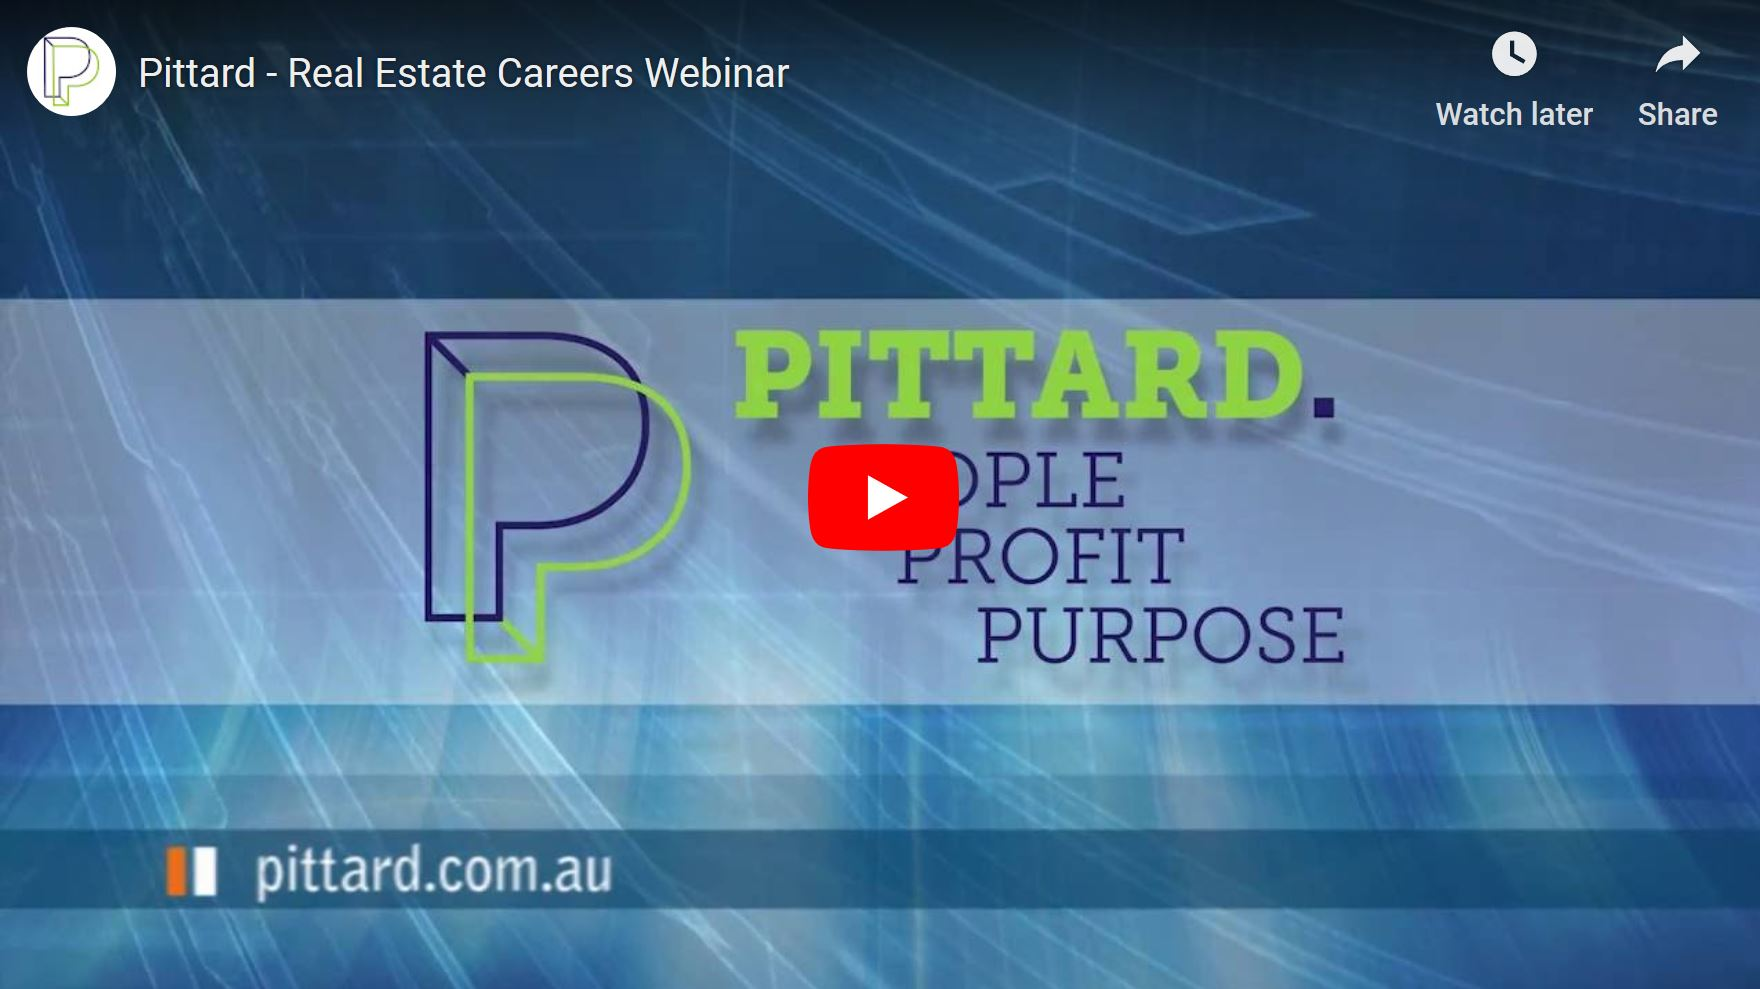 Real Estate Careers Webinar